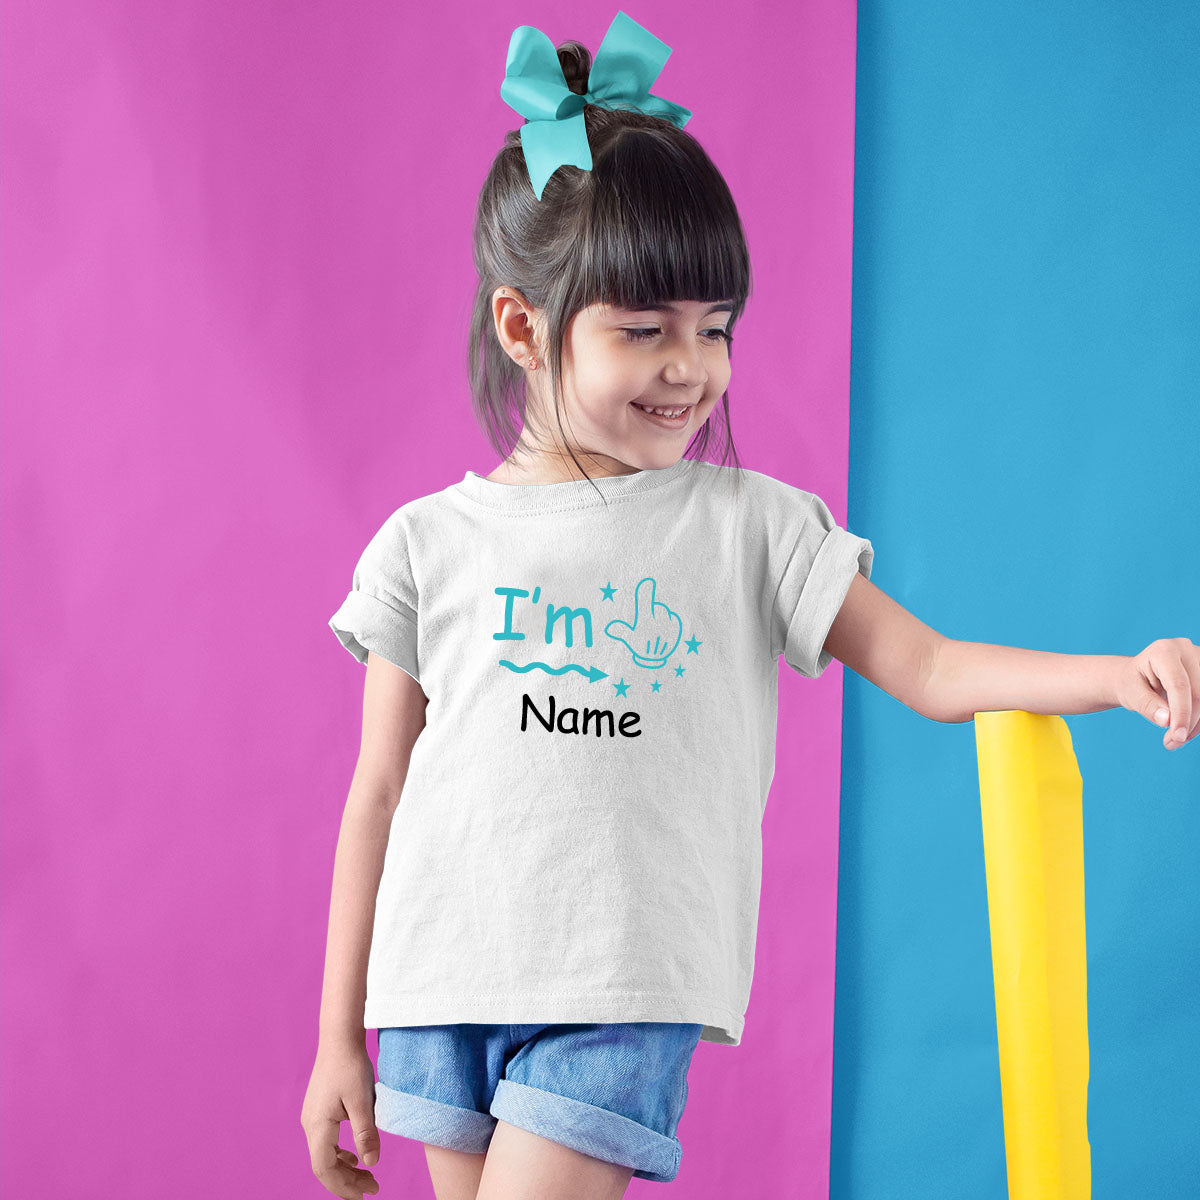 Sprinklecart Customized I'm One Birthday T Shirt | Personalized Name and Age Printed Birthday Dress